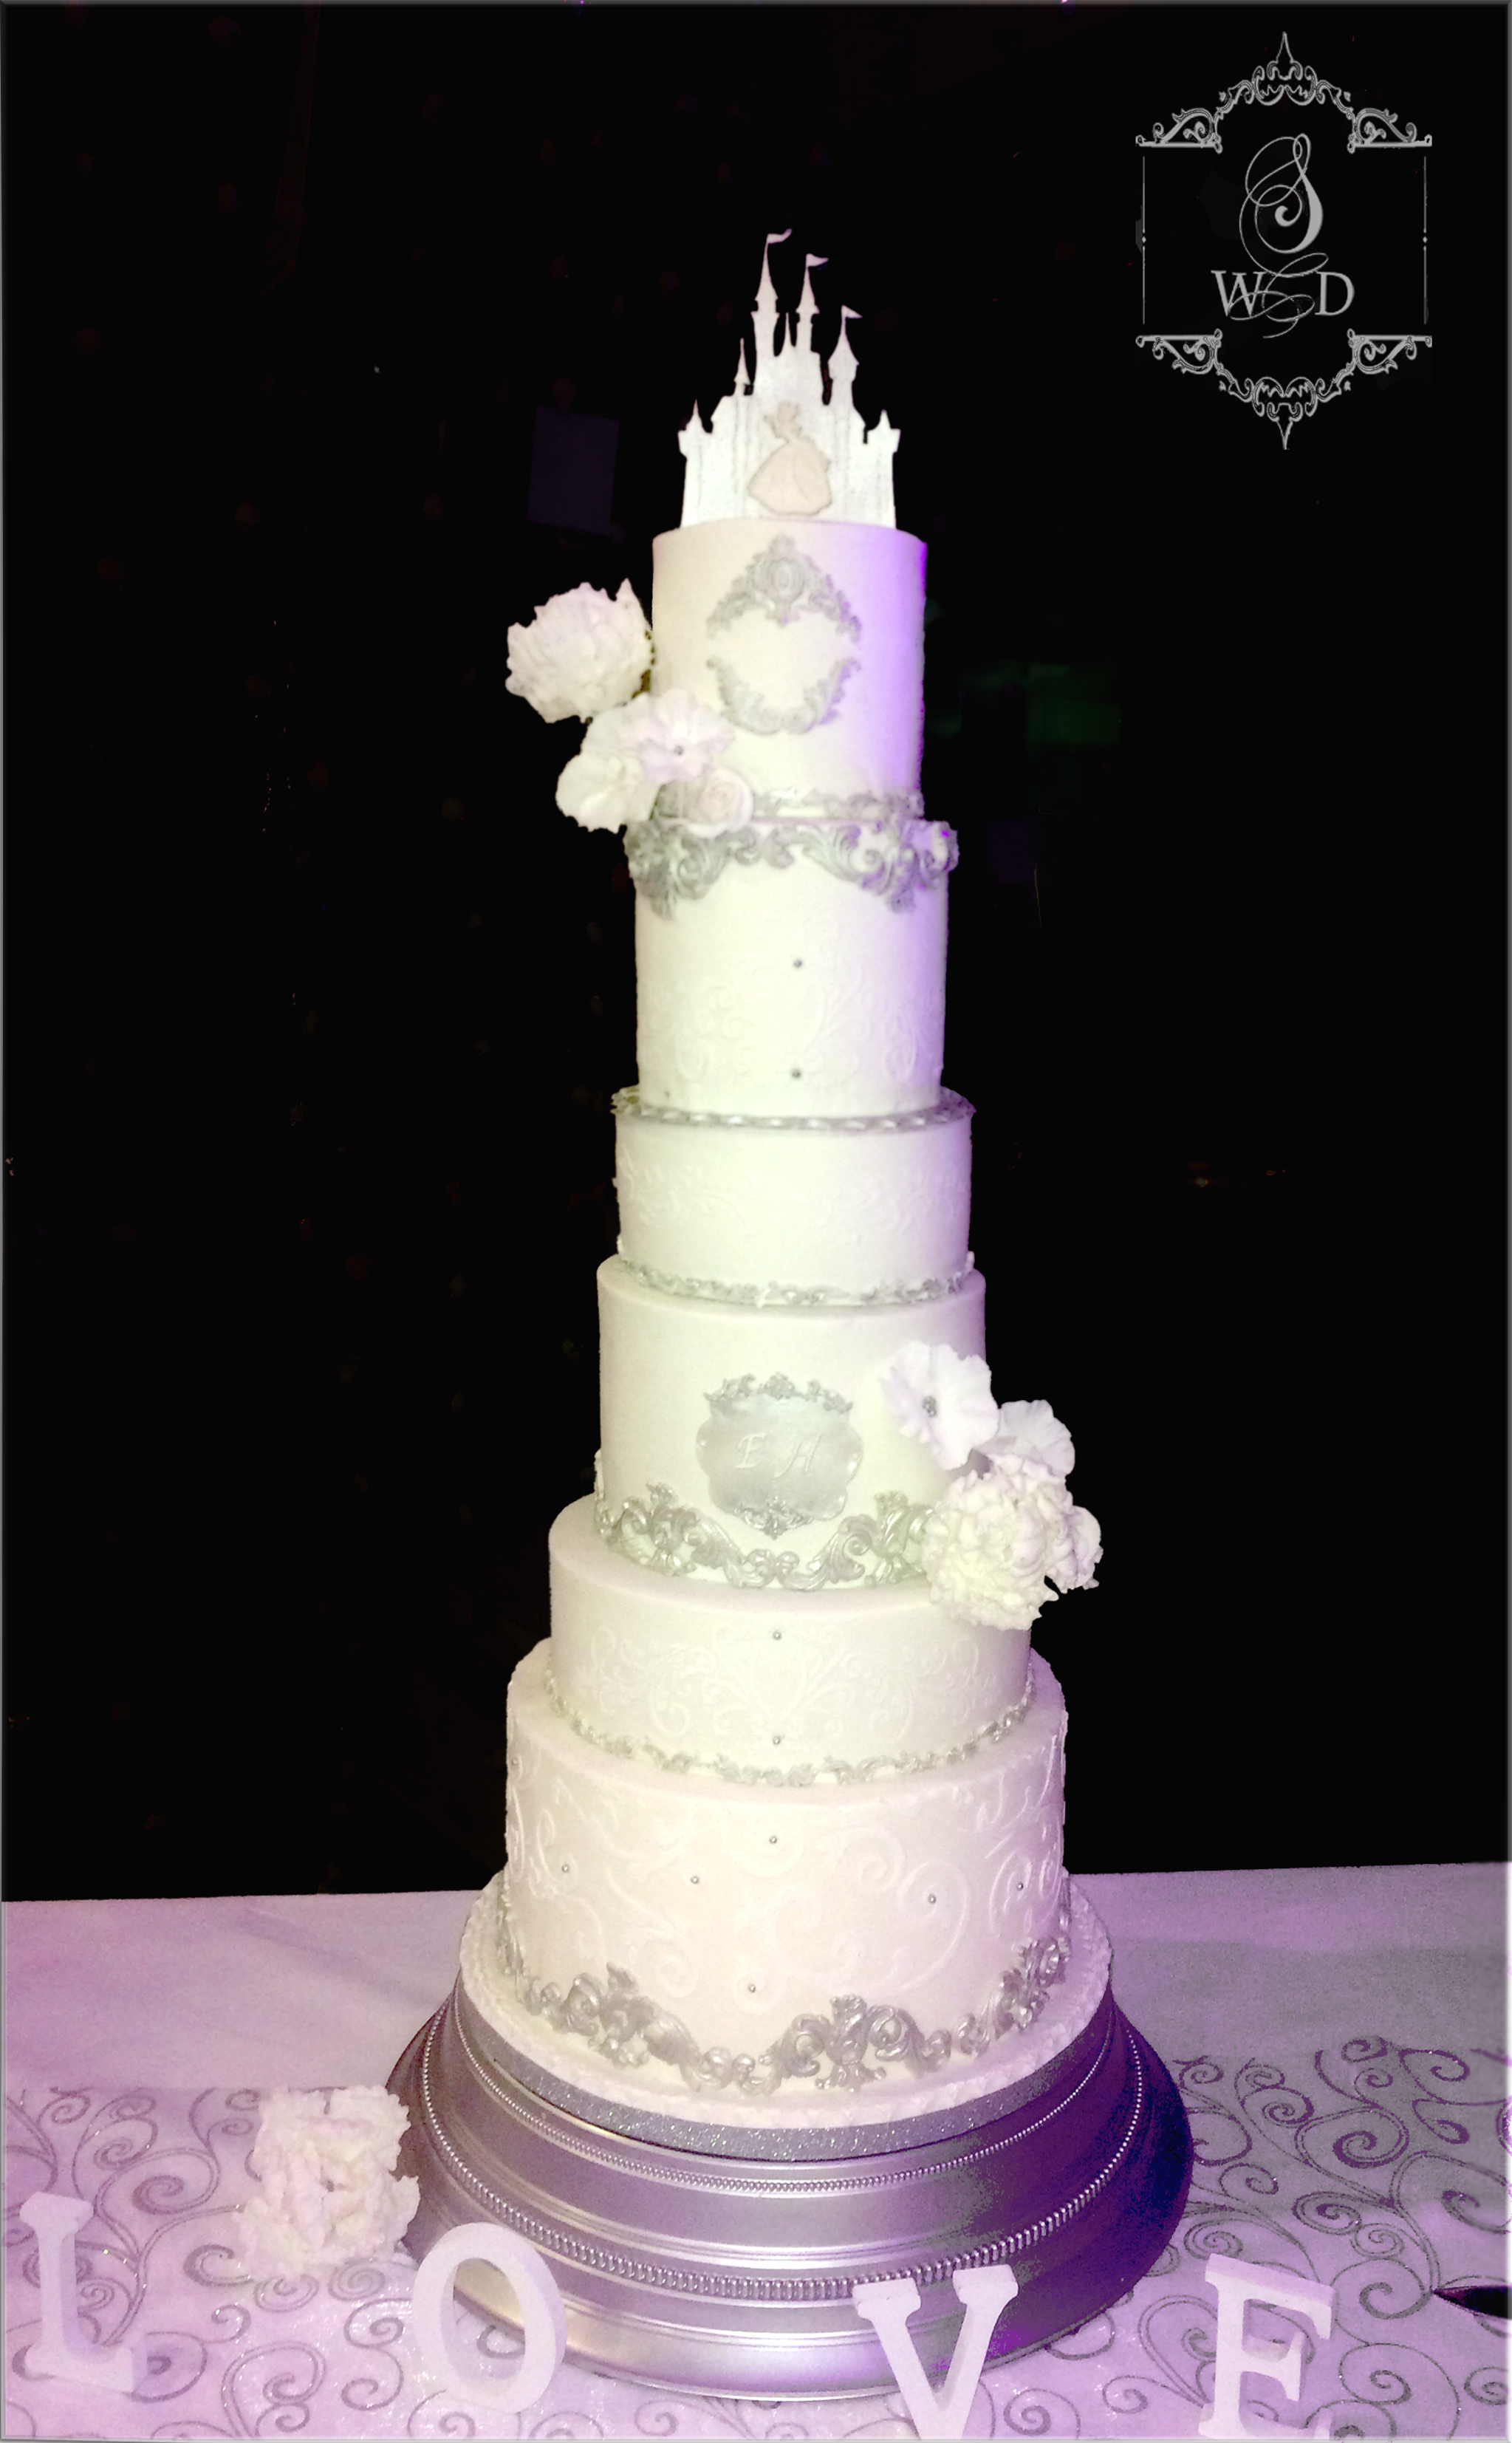 wedding cake de conte de fée